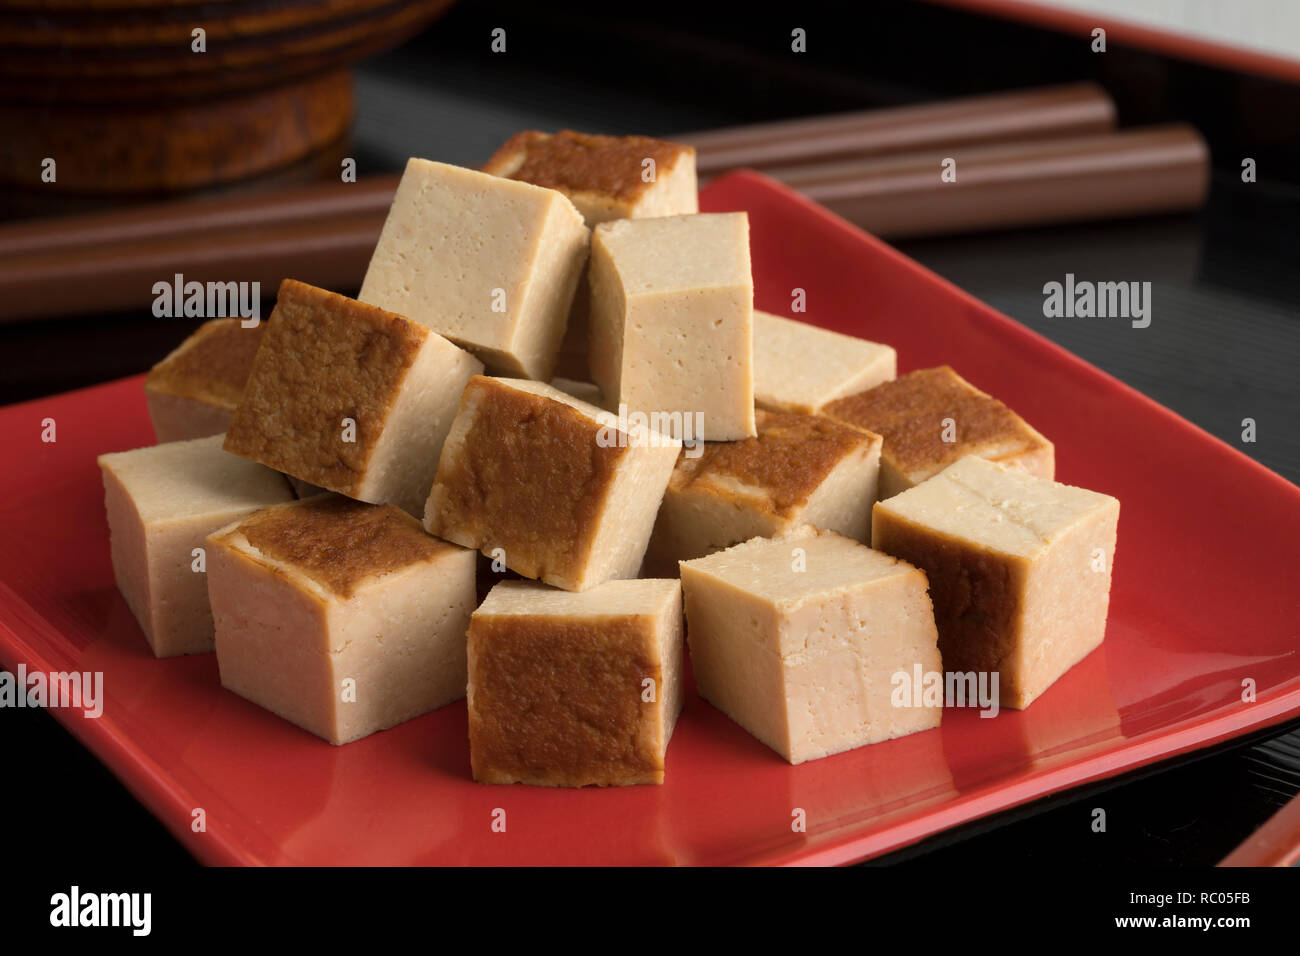 Cubes of smoked tofu on a red dish close up - Stock Image